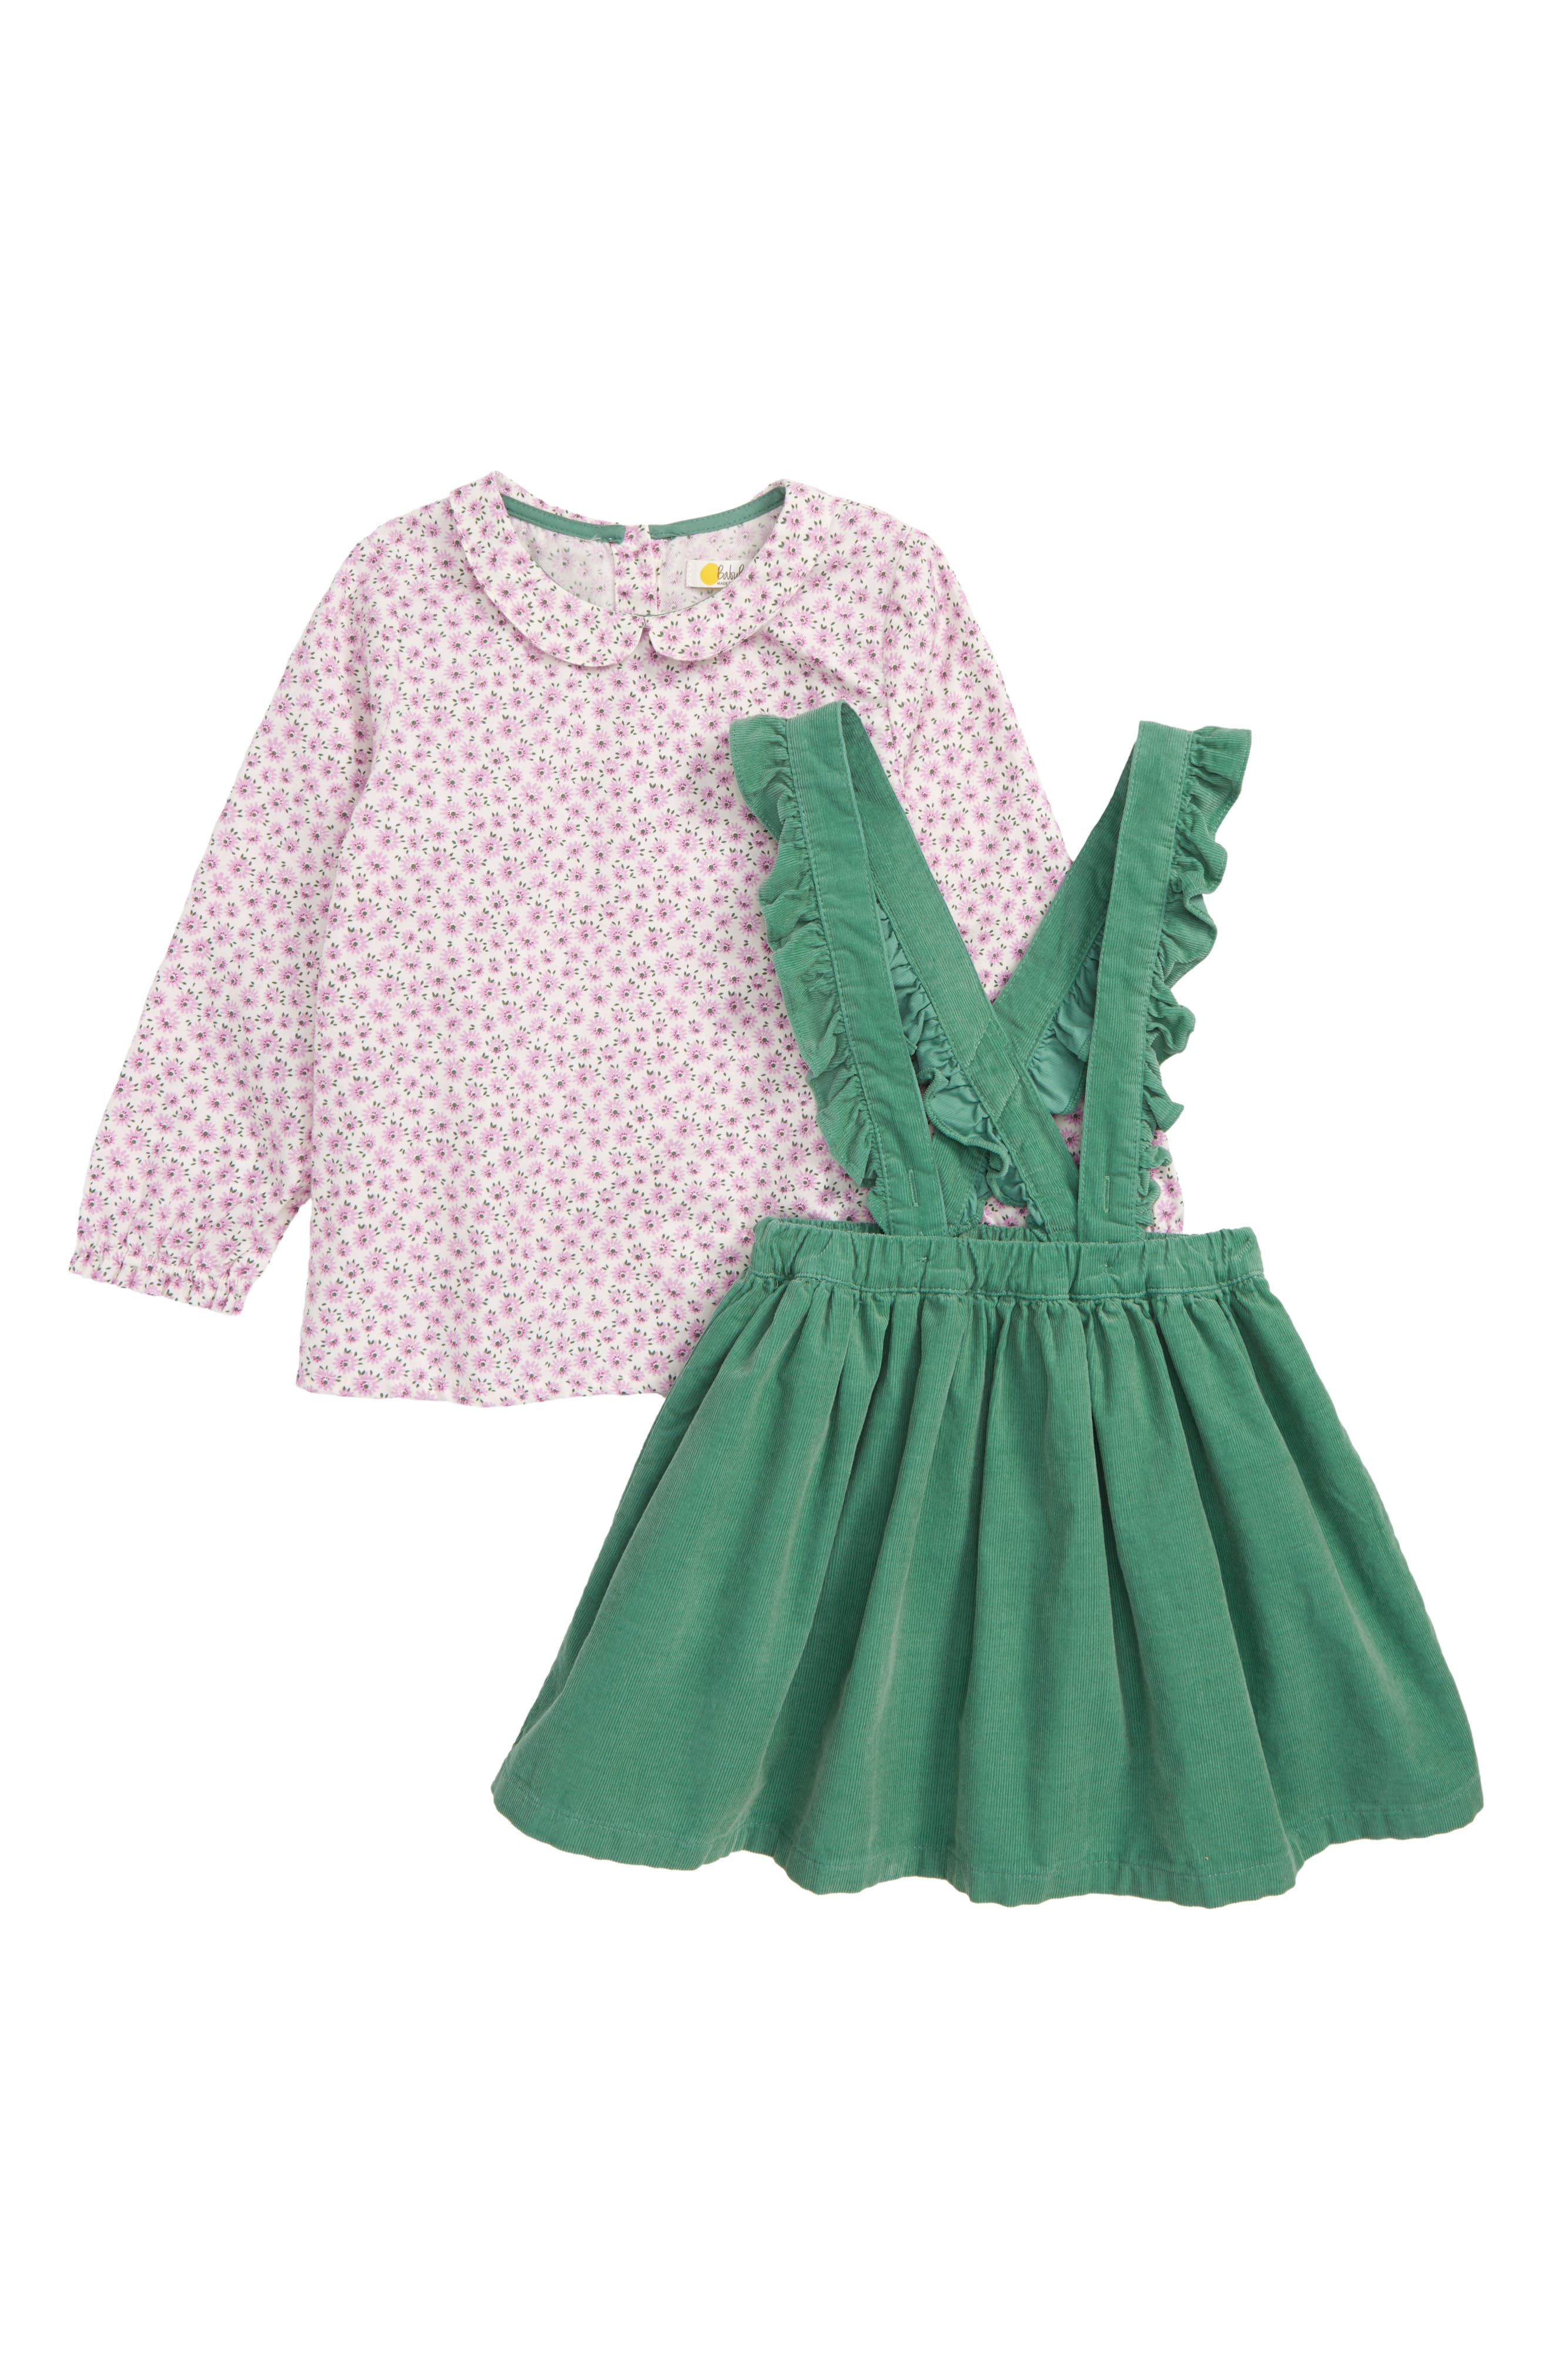 Nostalgic Print Top & Overall Skirt,                             Main thumbnail 1, color,                             PRP LILAC PINK BLOSSOM